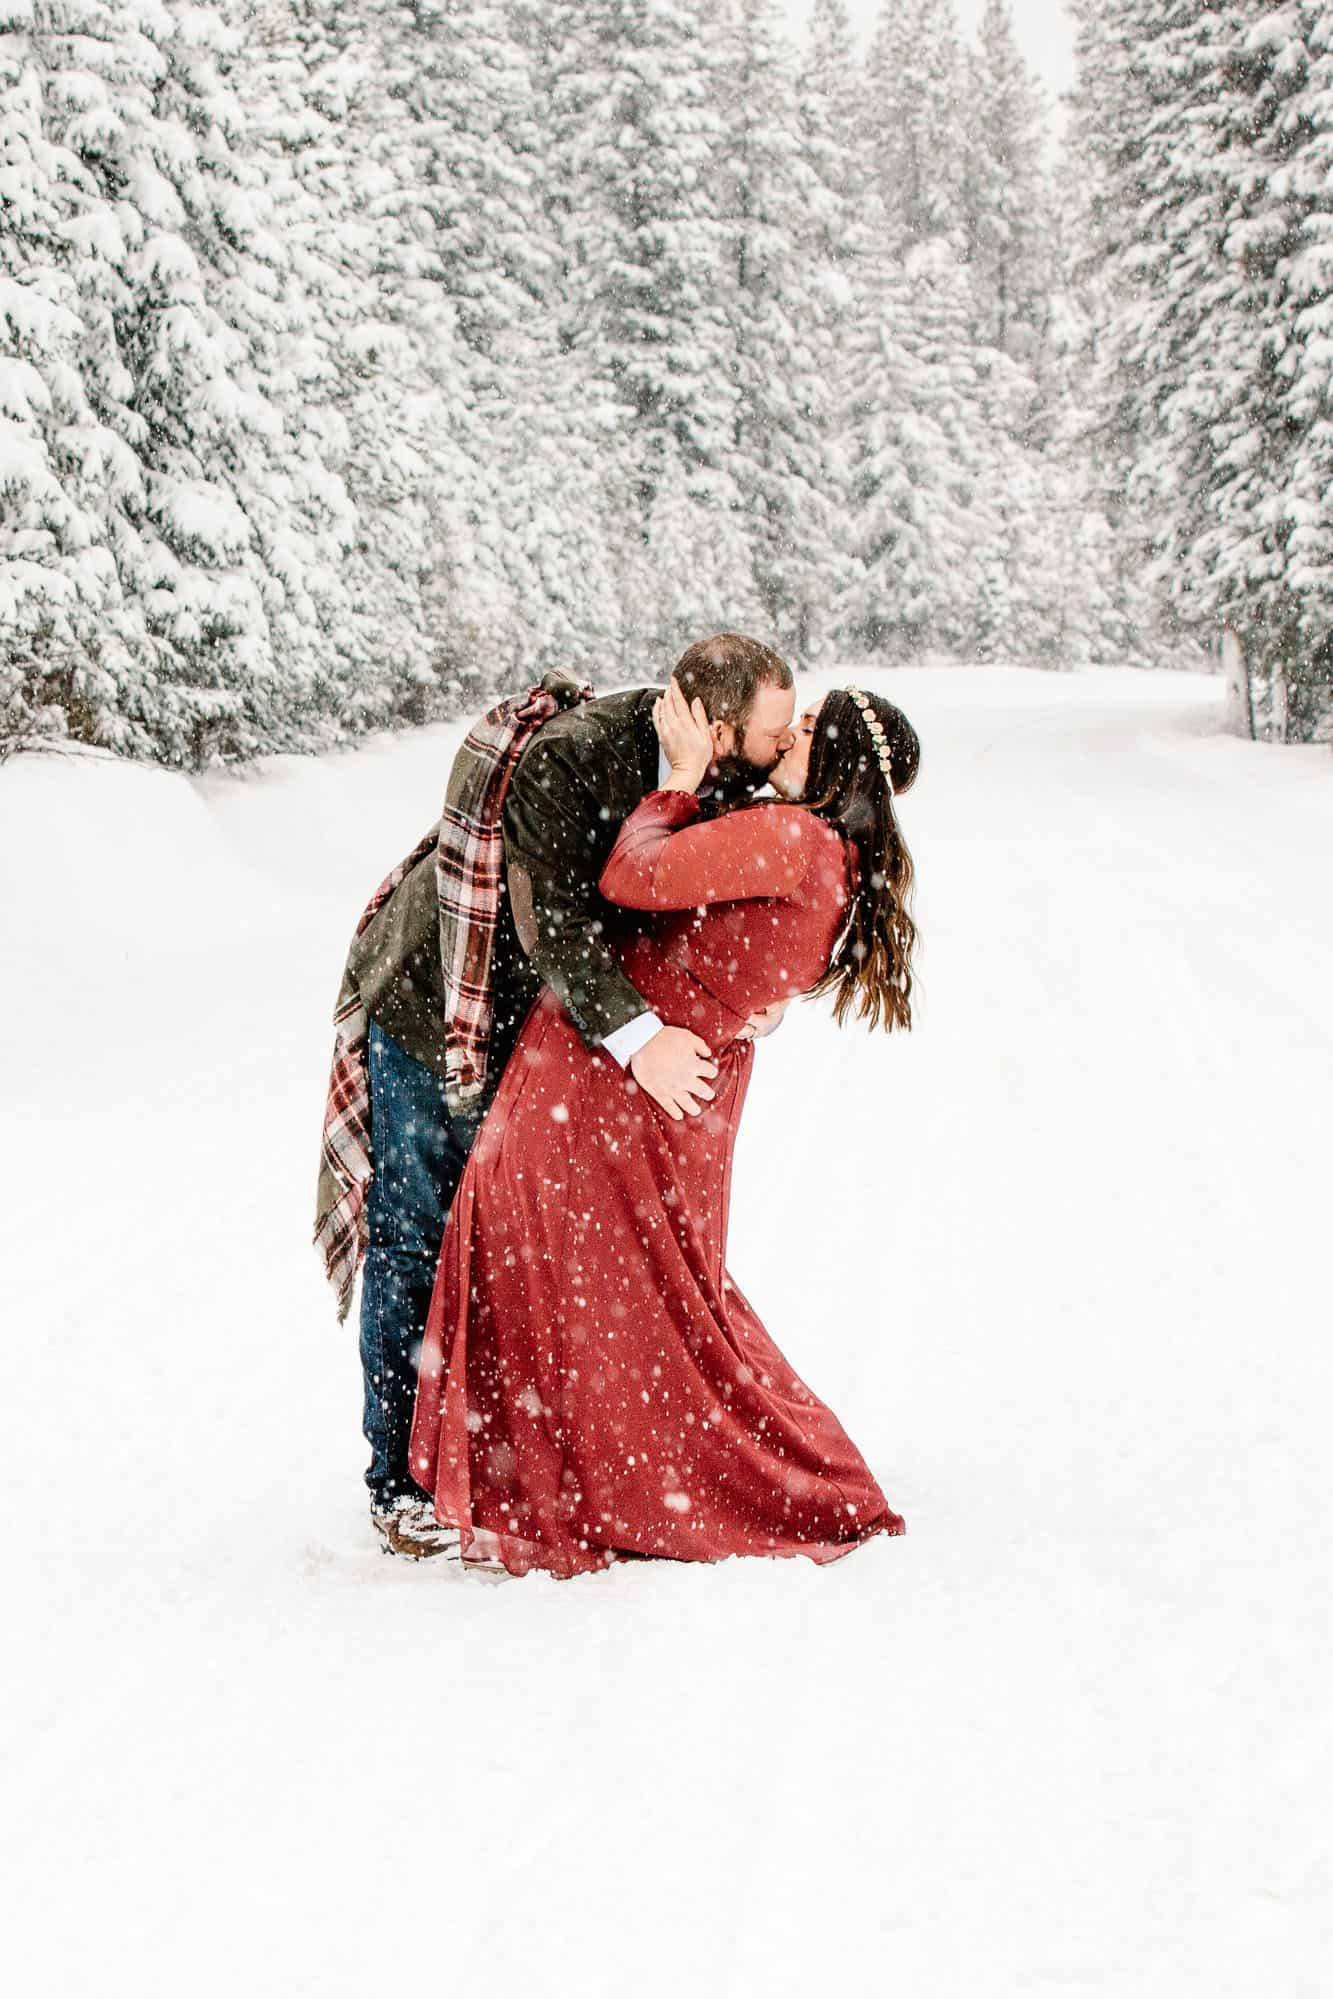 couple doing a dip kiss in the snow as snow falls all around them and trees are coated with snow in the background